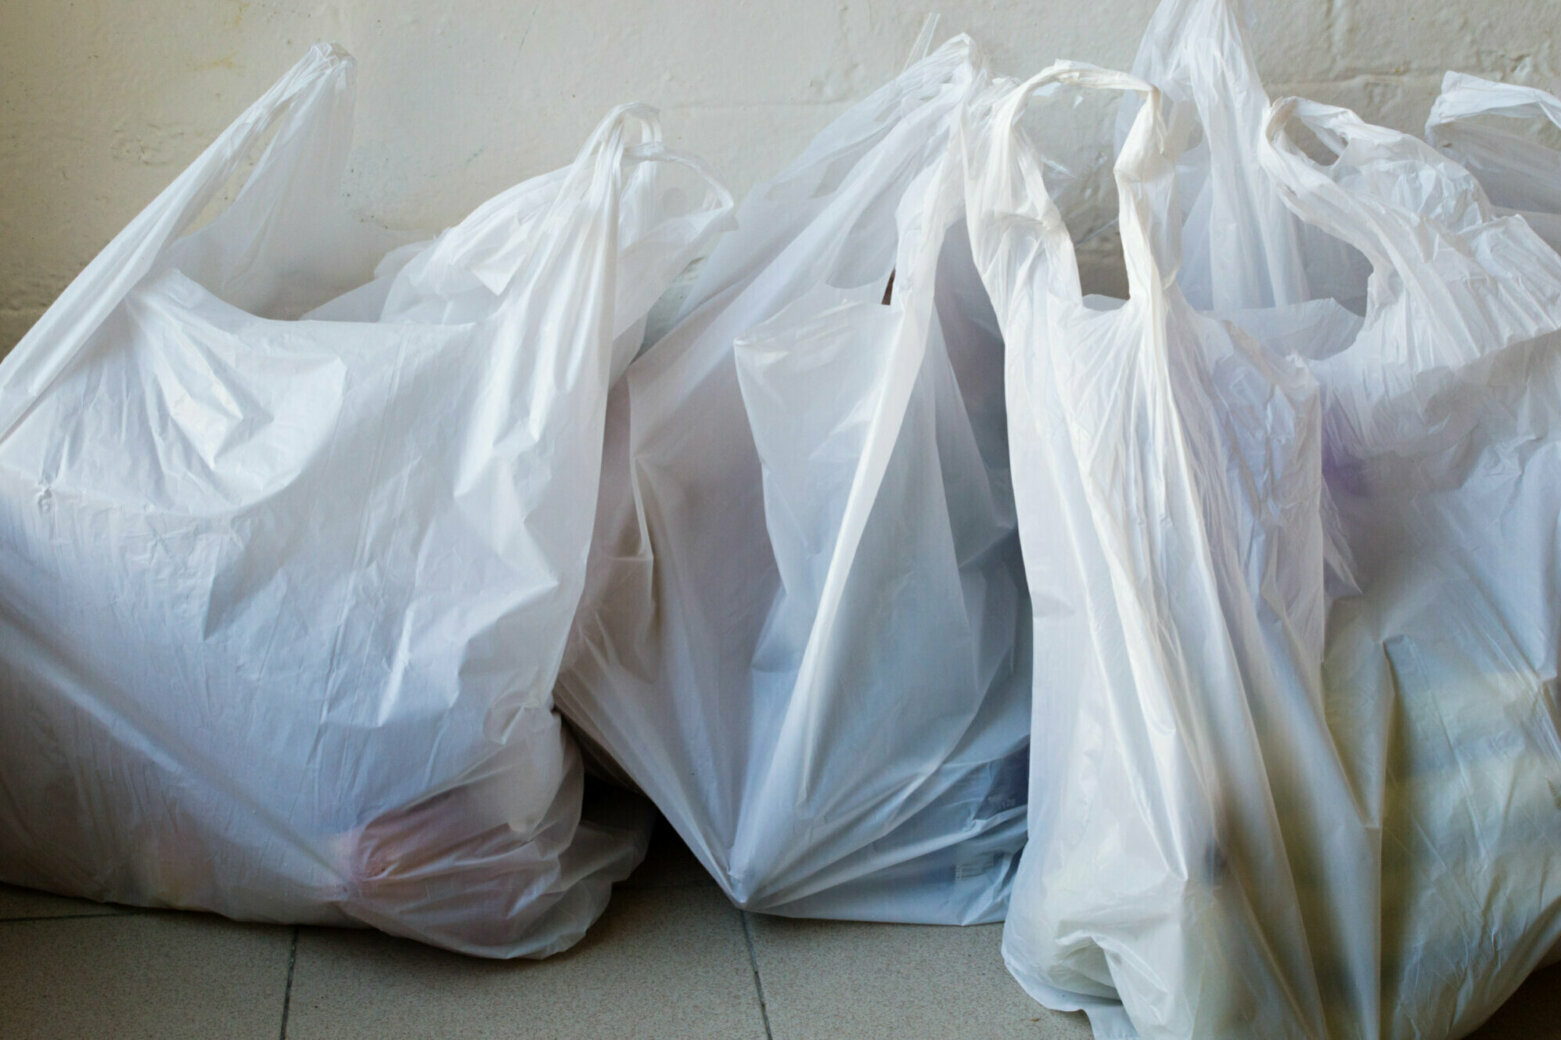 Arlington Co. Board unanimously approves 5-cent tax on disposable bags